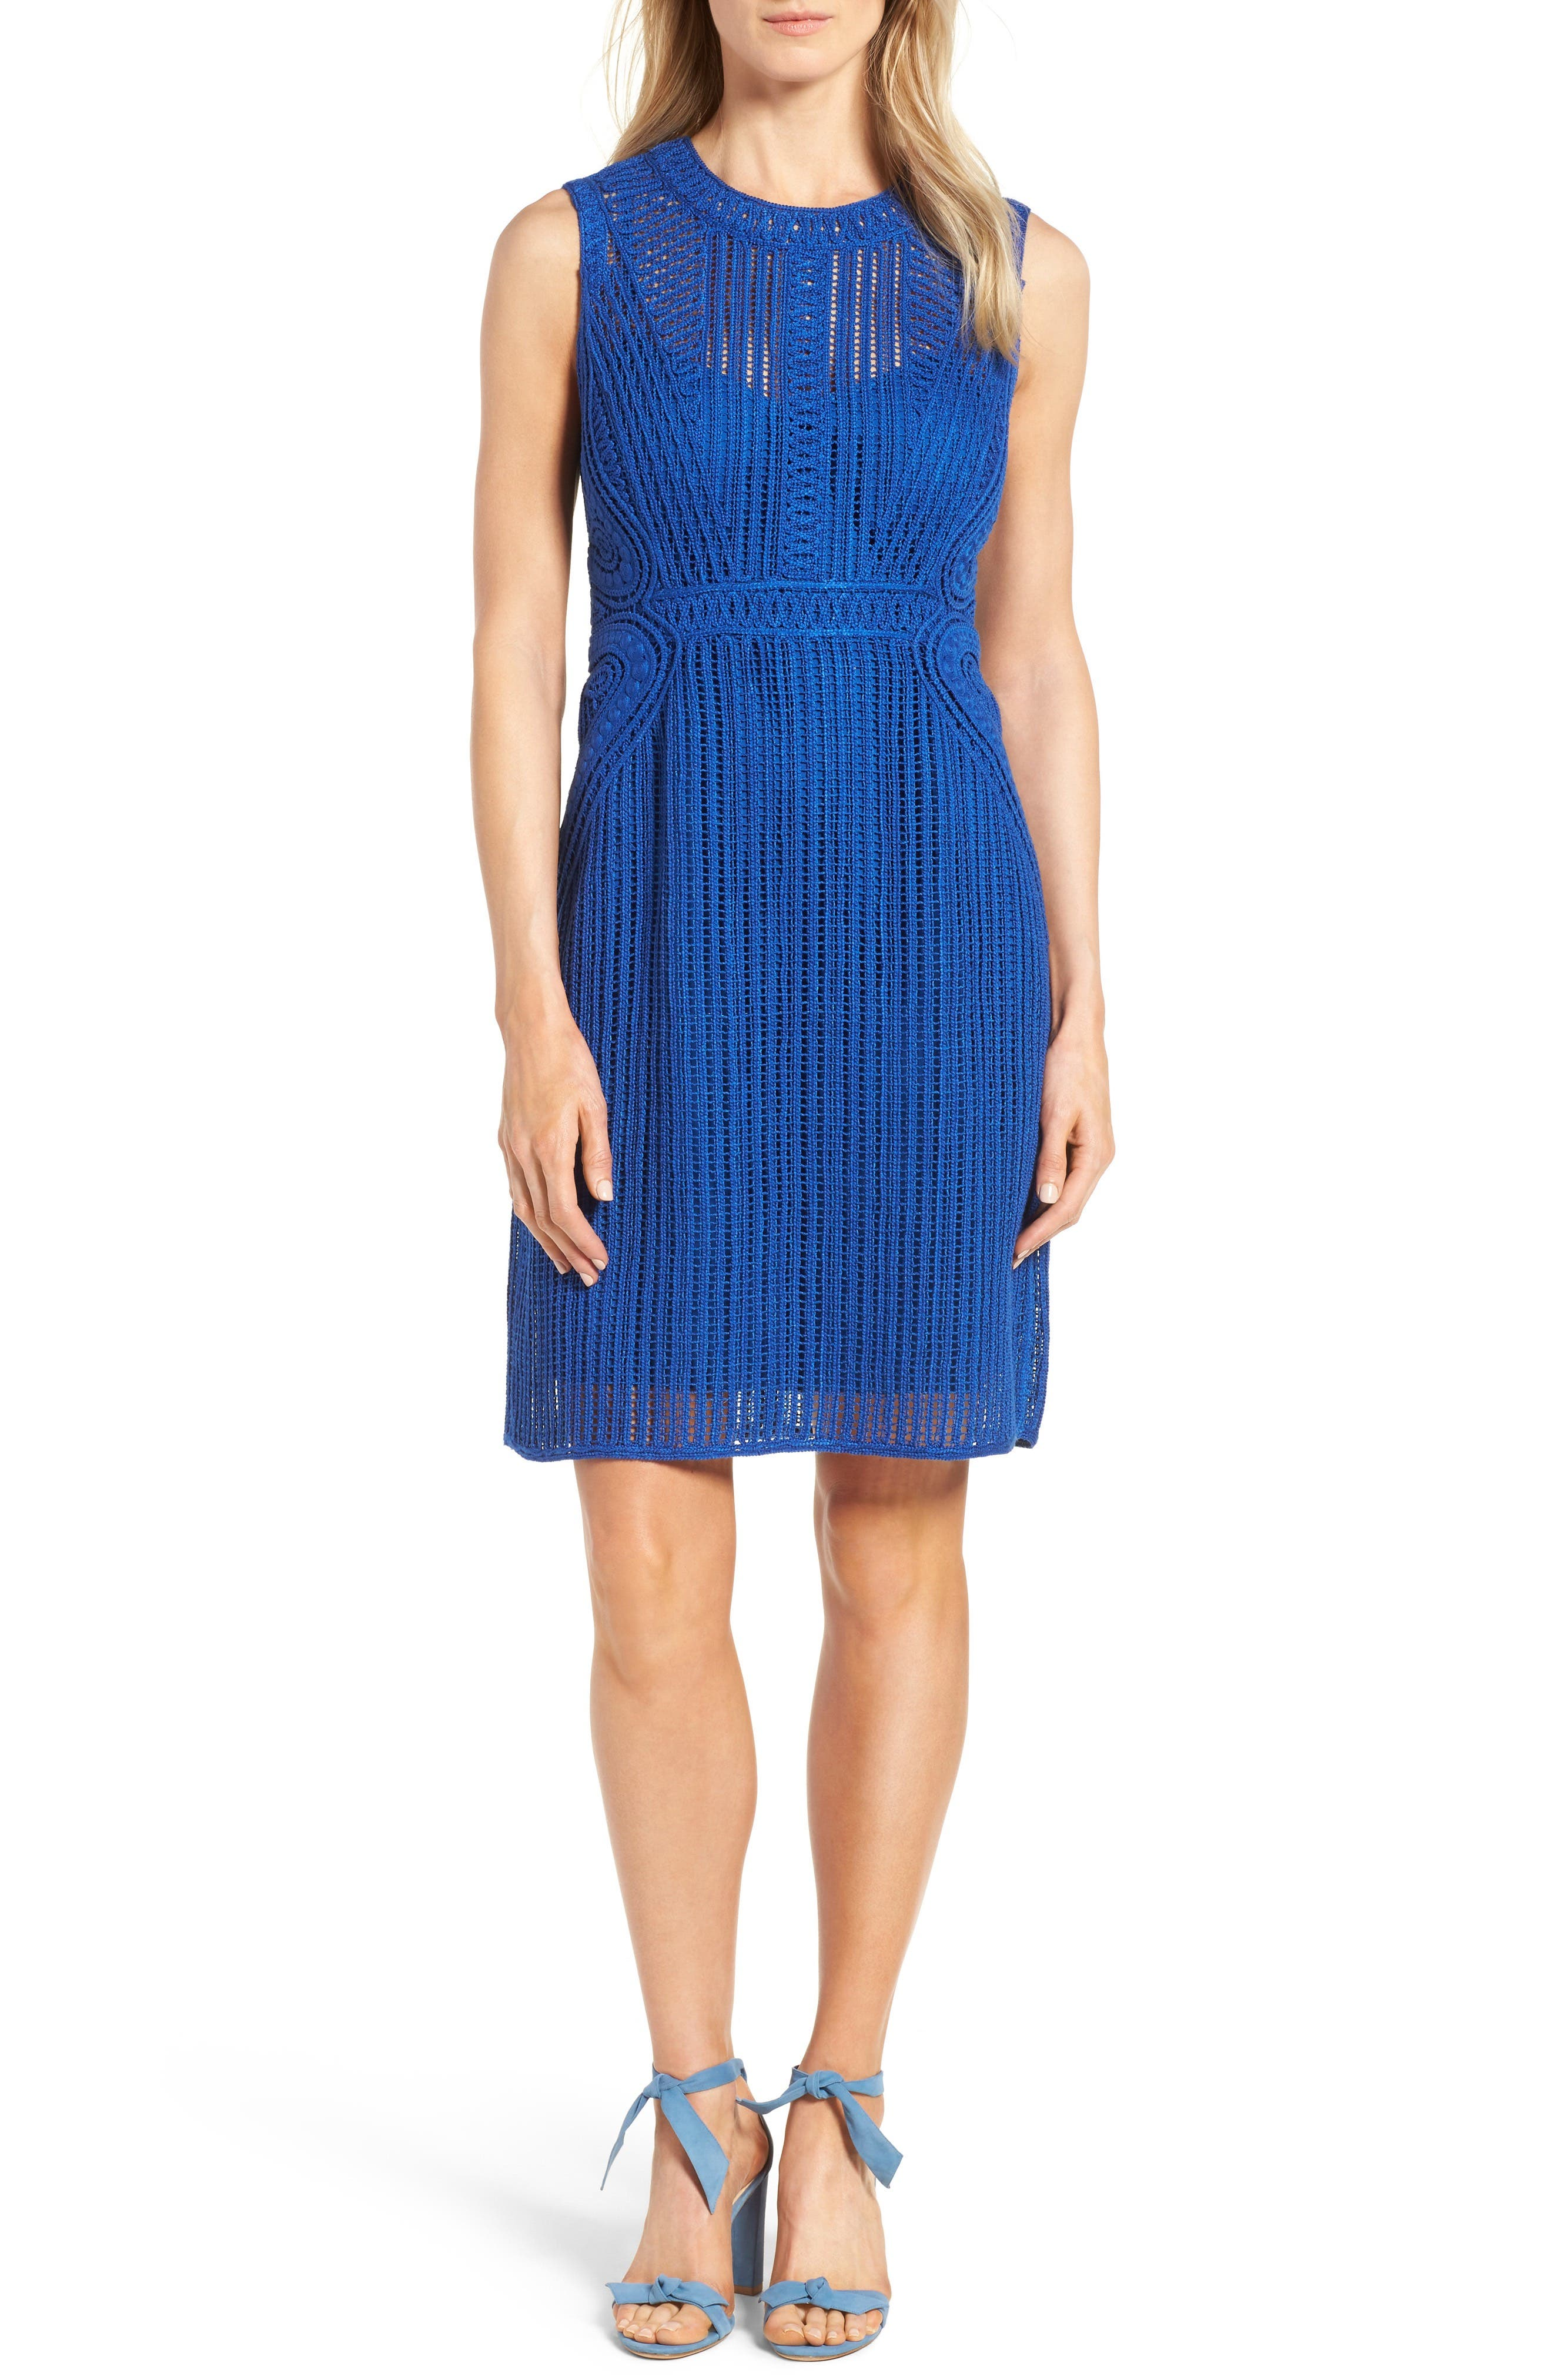 Kobi Halperin Jayden Cotton Lace Sheath Dress